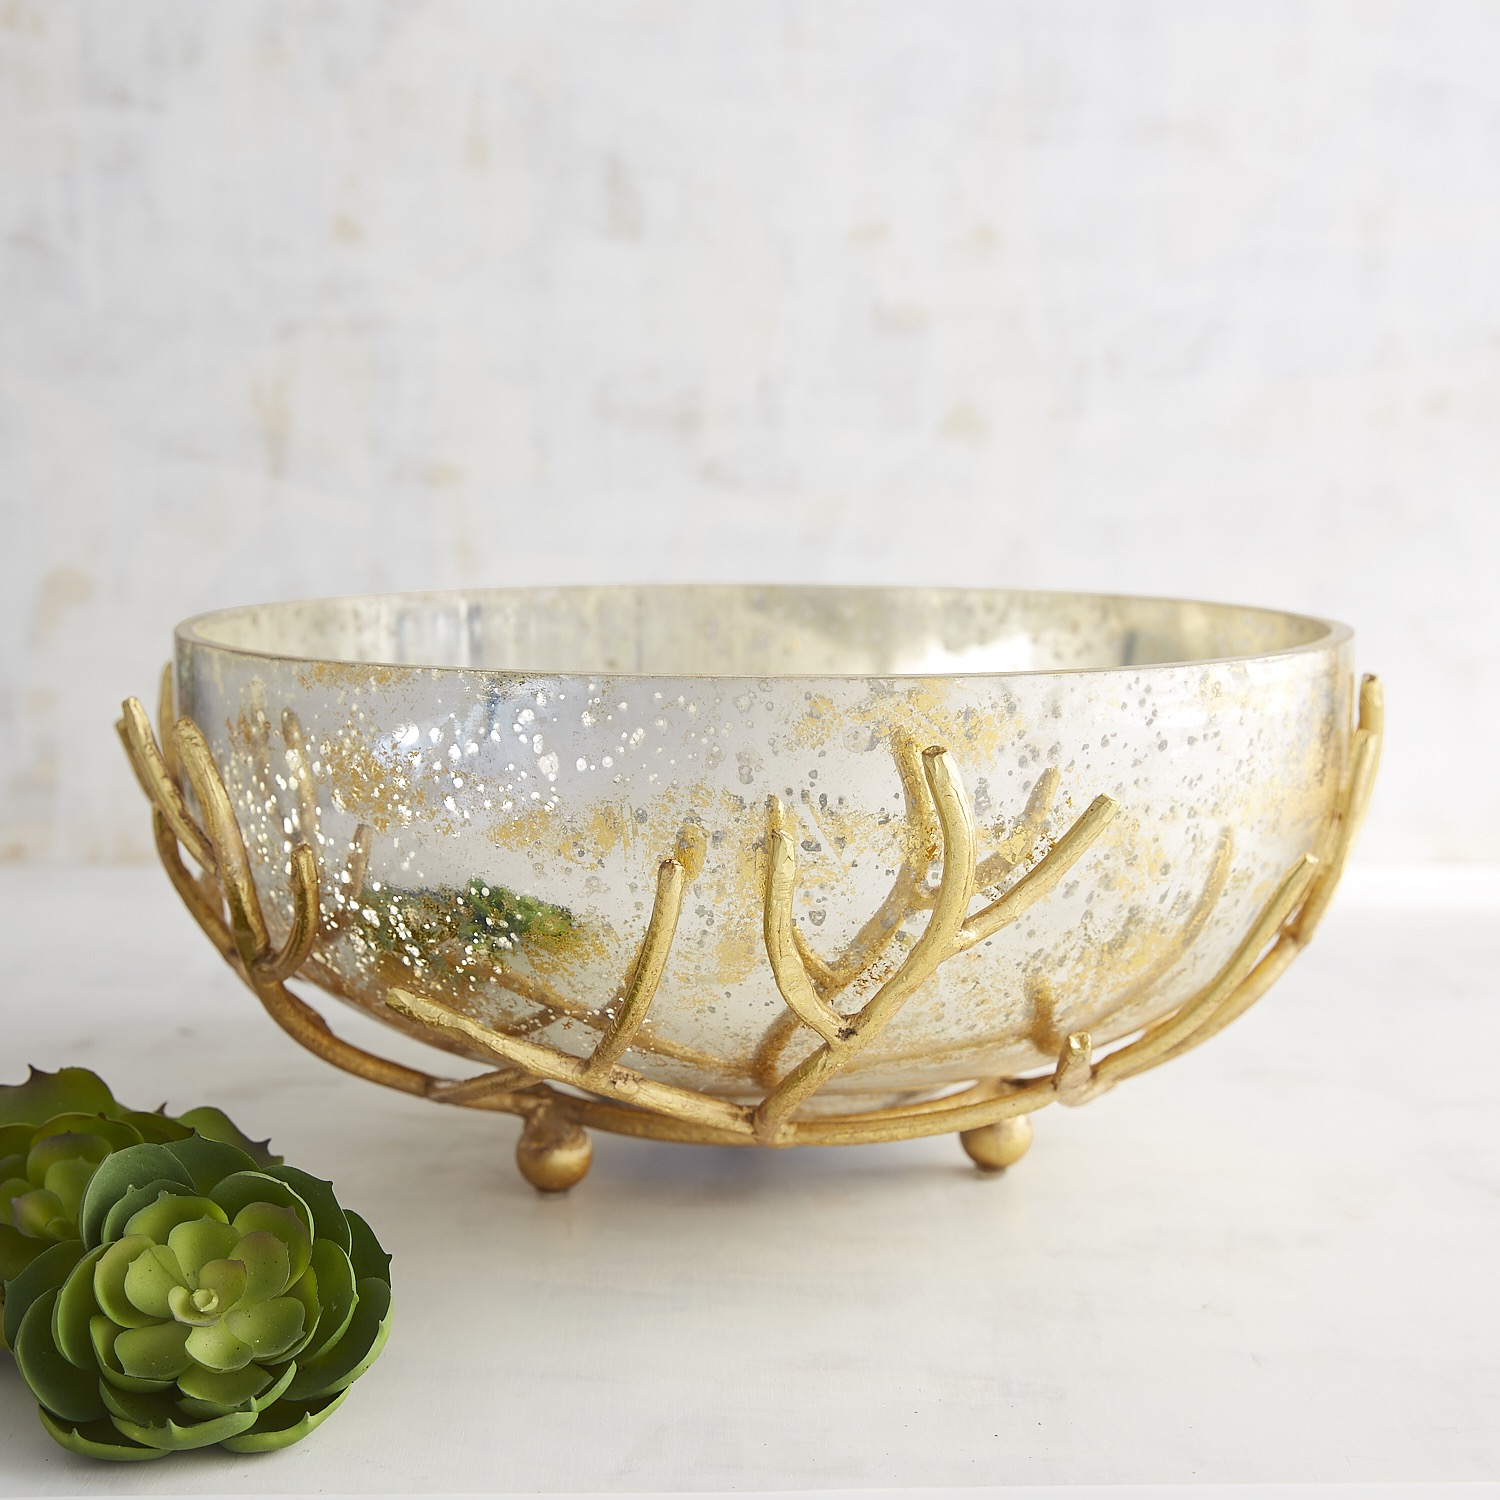 Mercury Glass Bowl with Stand